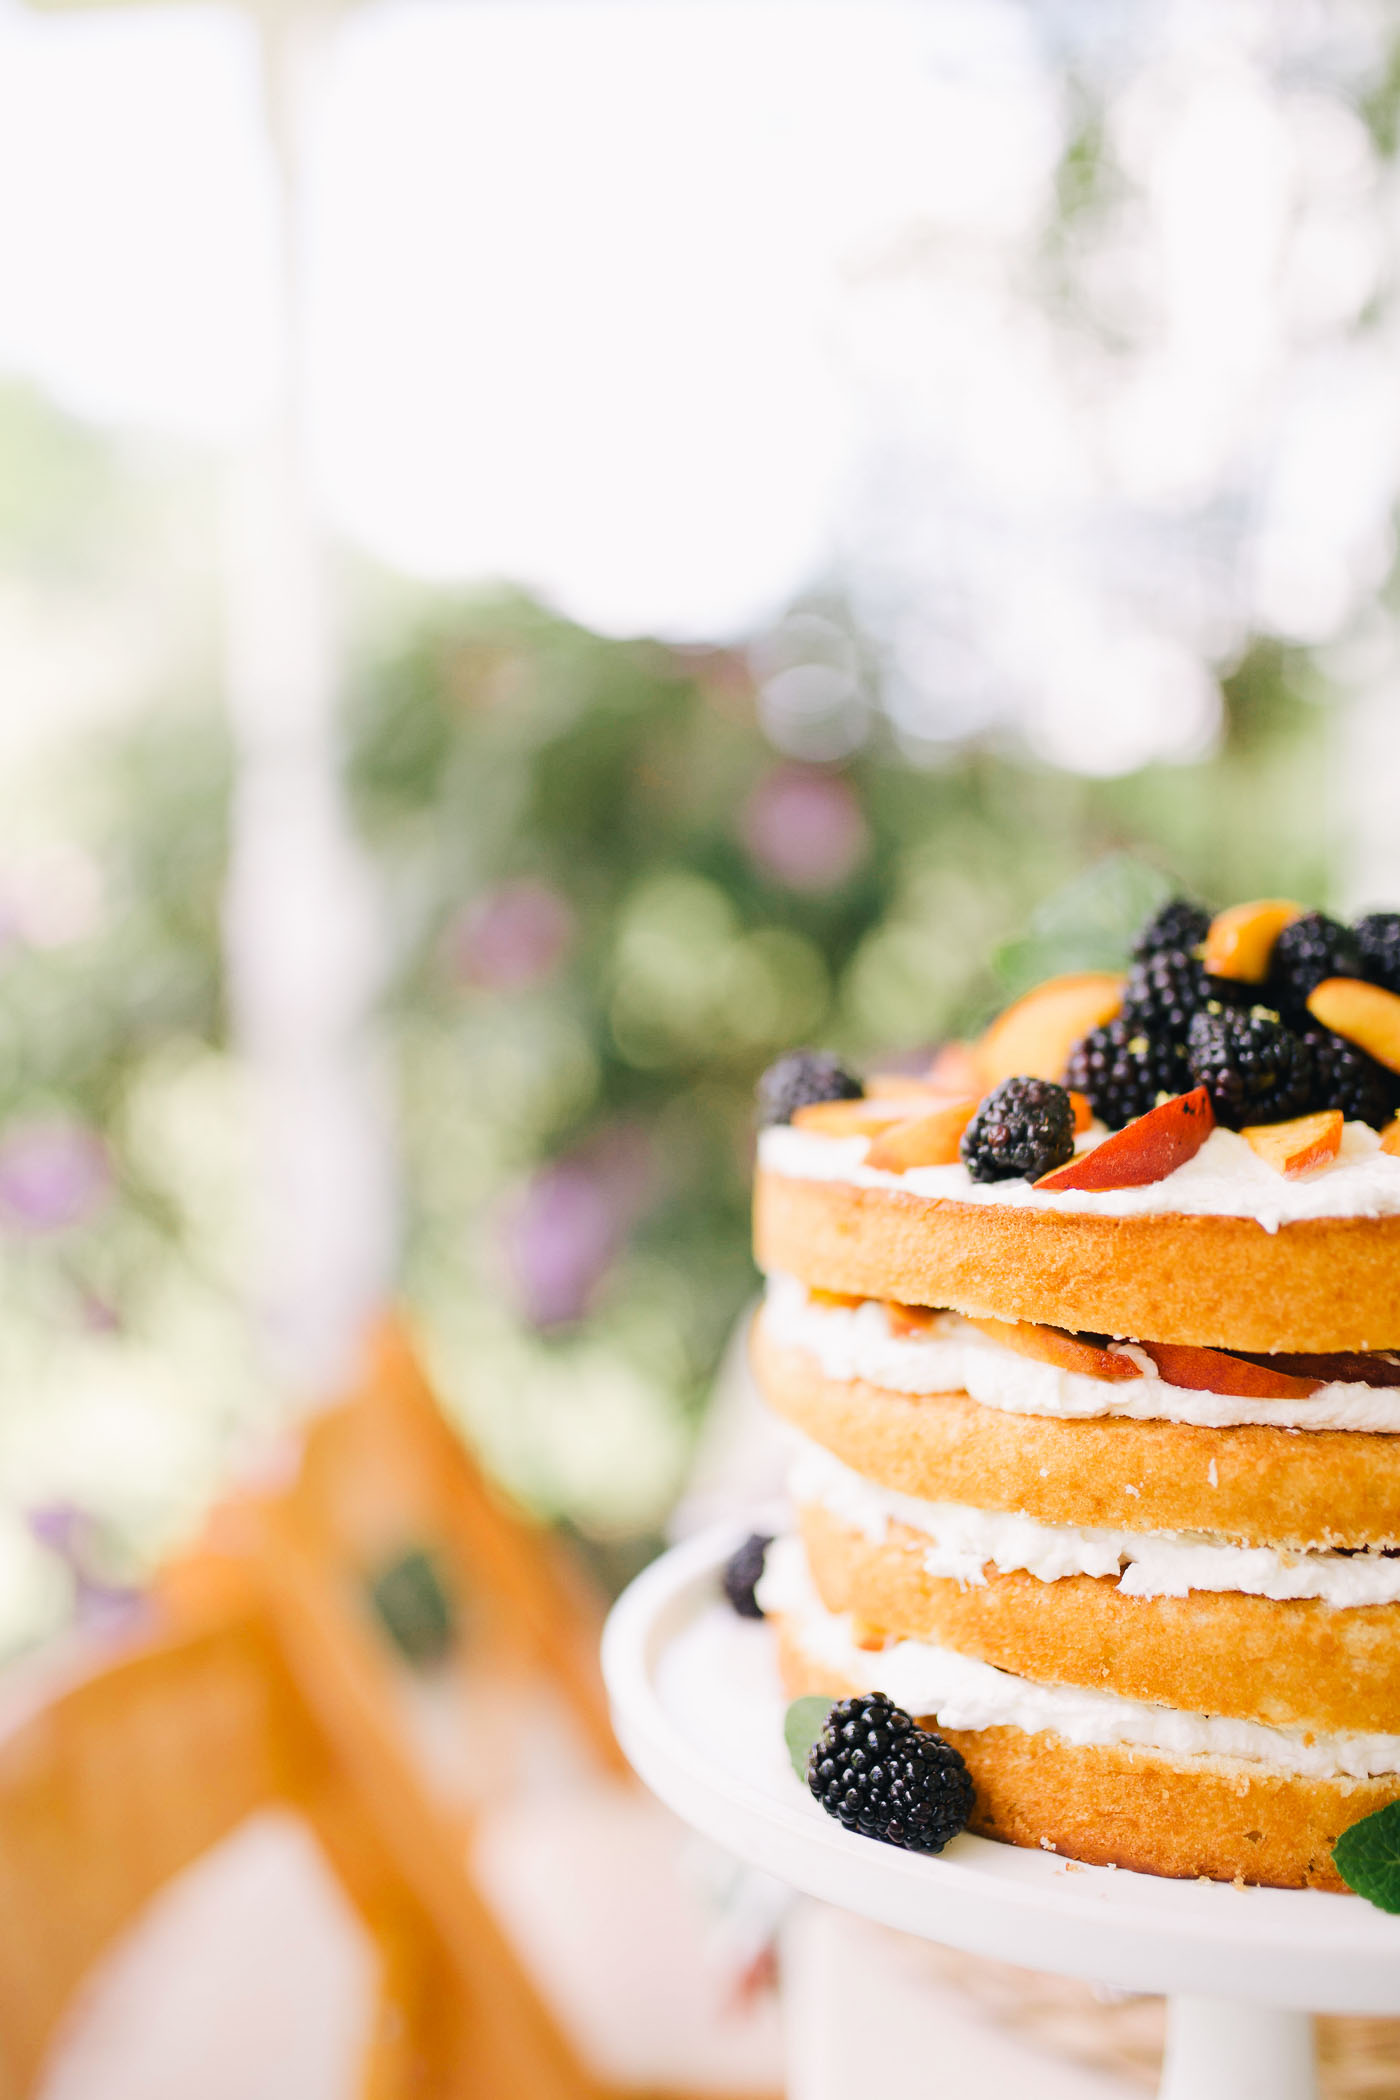 A blackberry peach shortcake recipe by Lauren Cermak of the Southern Lifestyle Blog, Going For Grace.